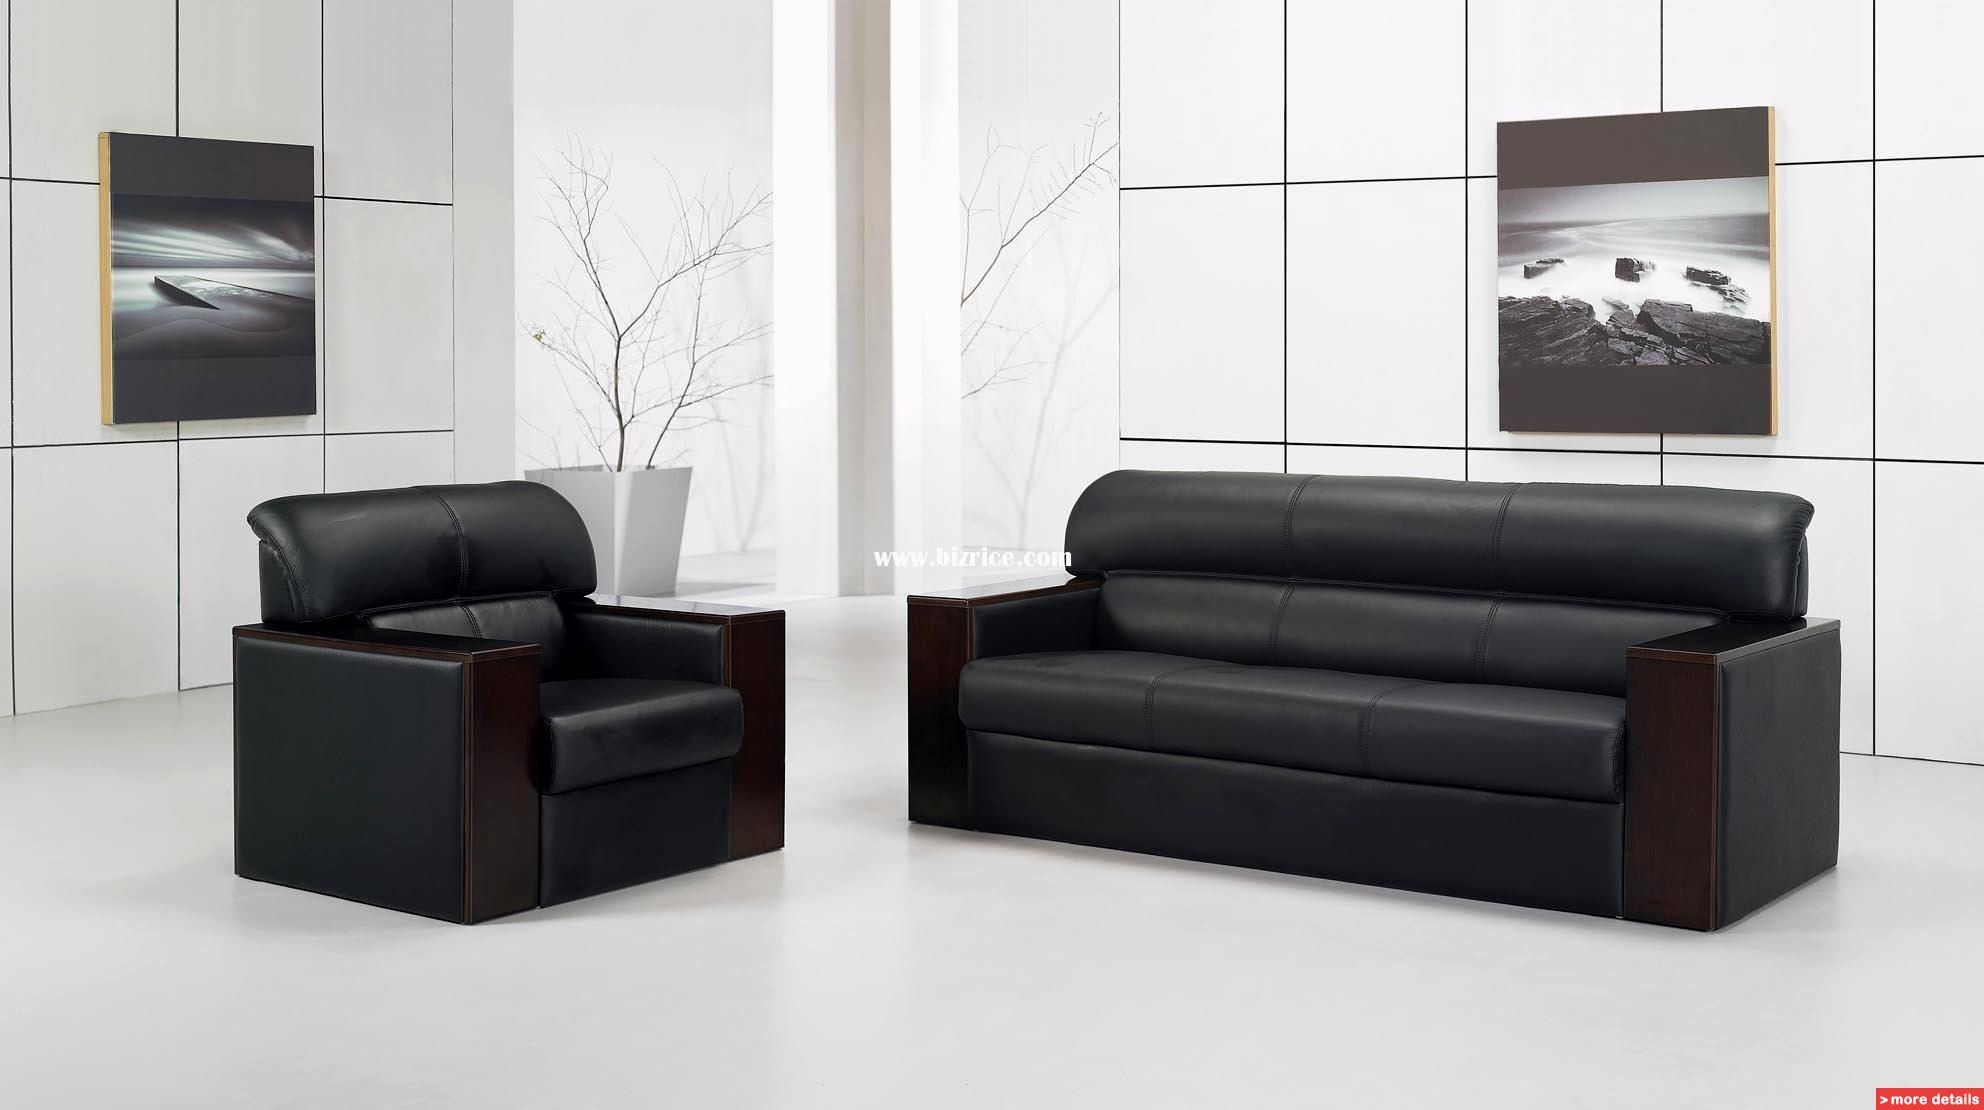 beautiful leather modular sofa design-Finest Leather Modular sofa Collection